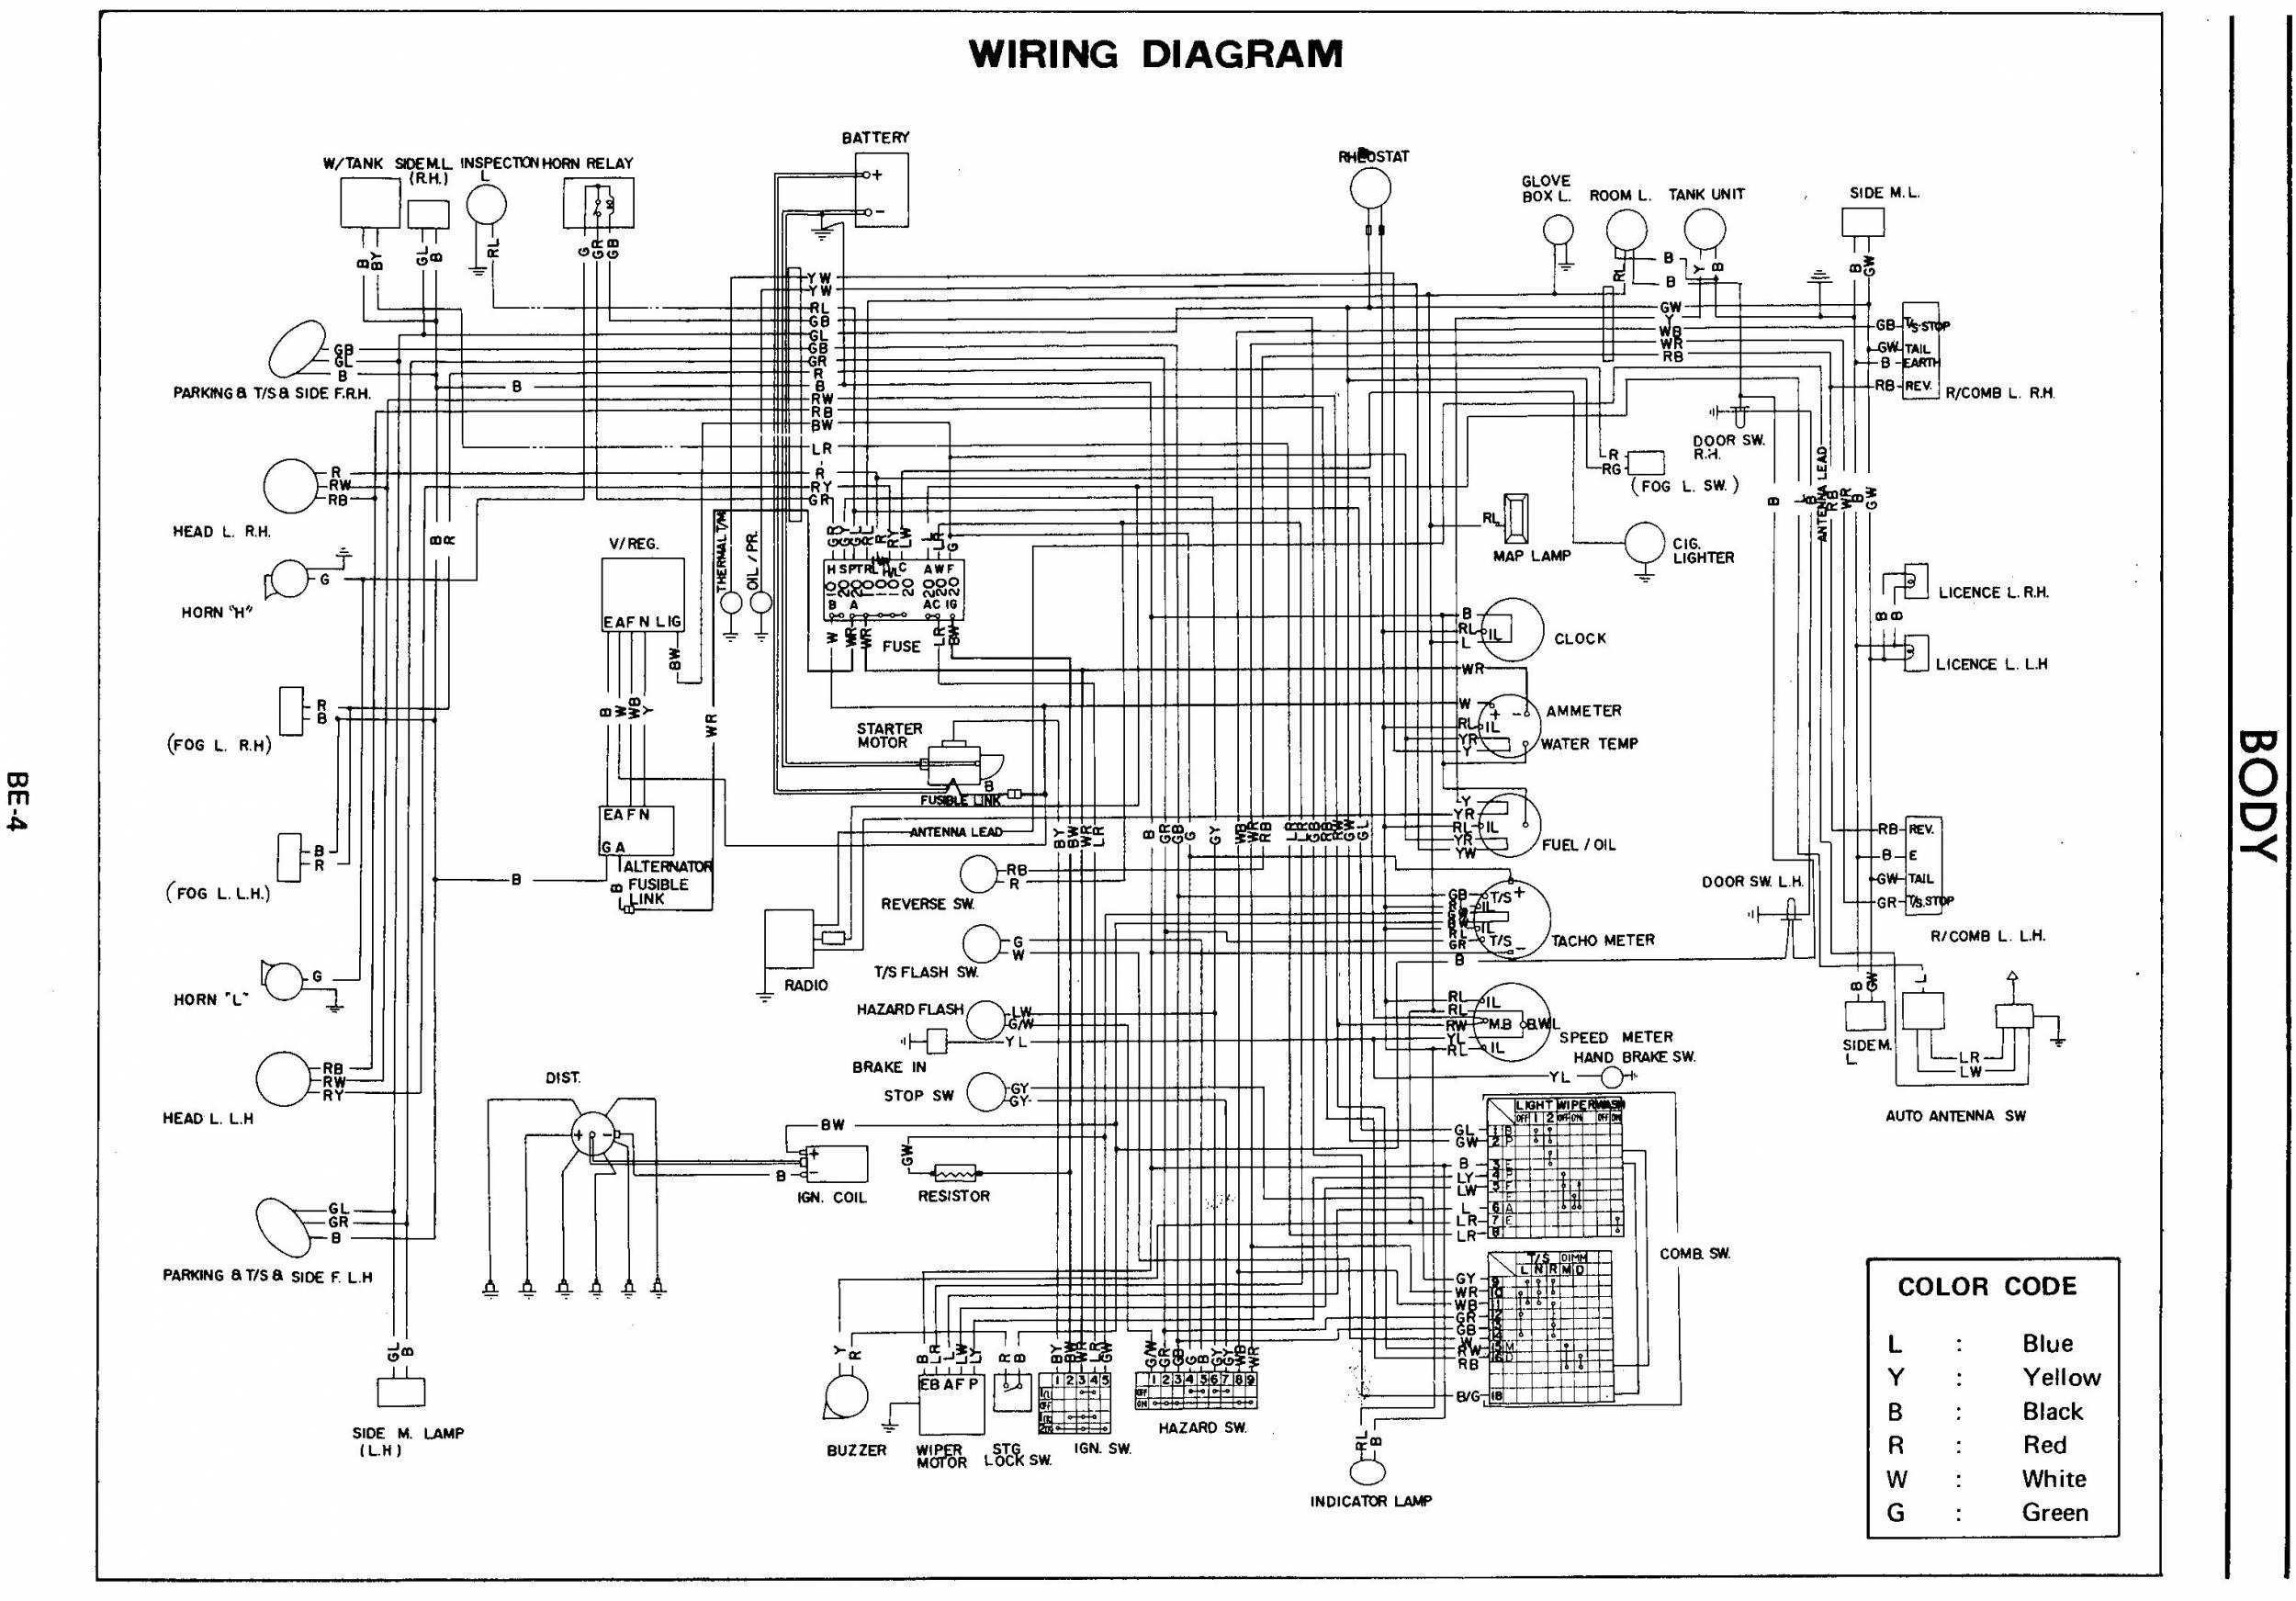 W124 Wiring Diagram Besides 2001 Gmc Sierra Radio Sonoma All Kind Of Diagrams Rh Skincareuse Pw